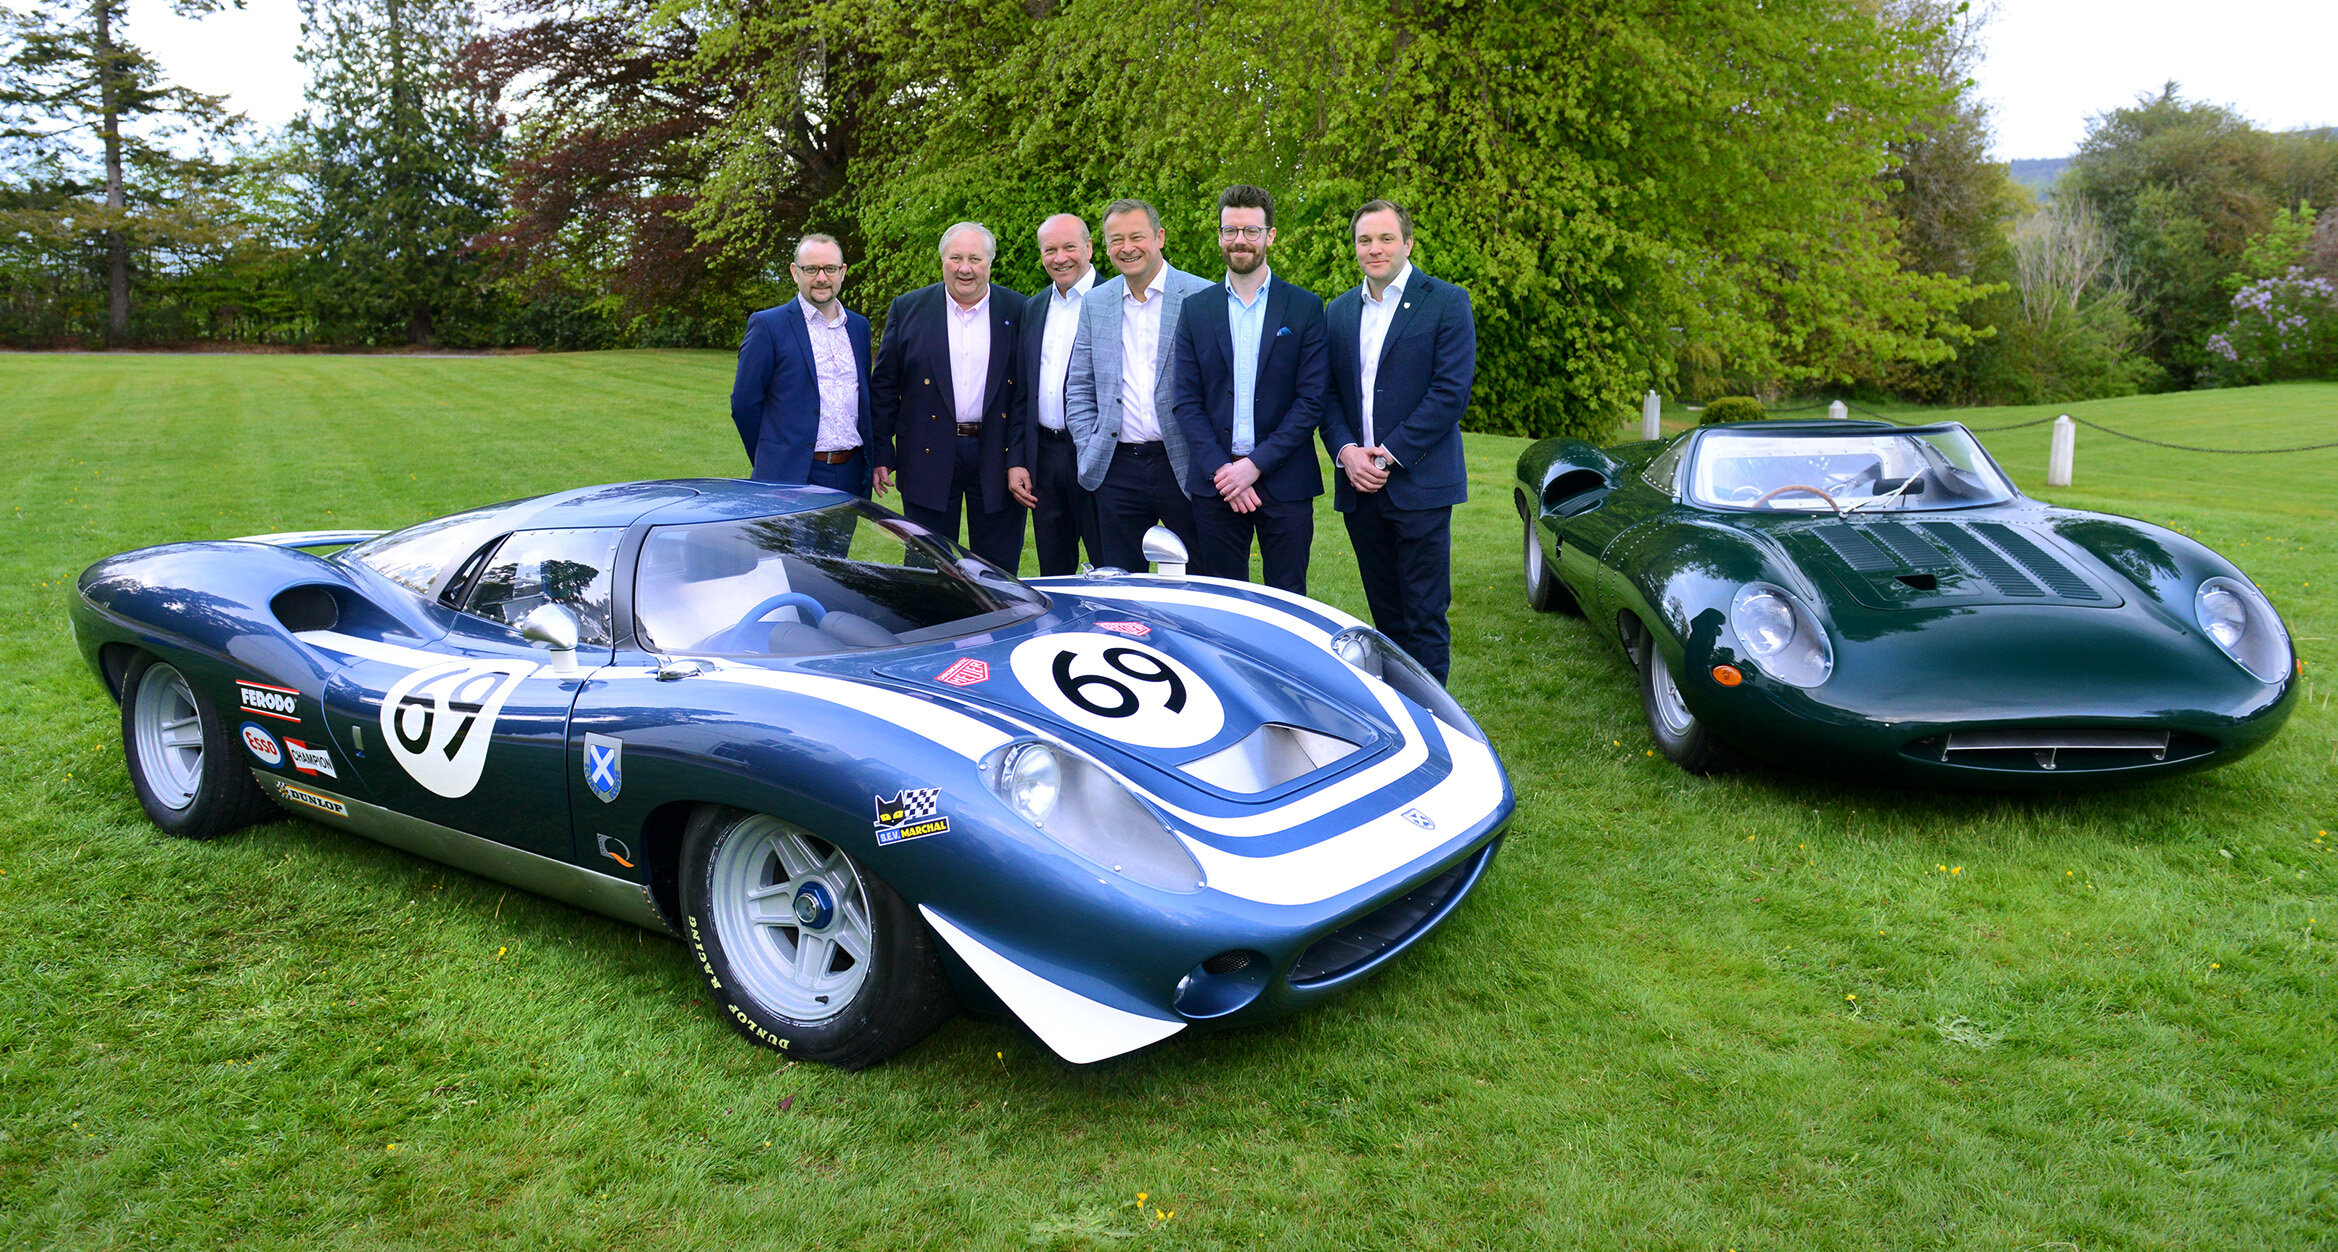 Private launch in Scotland. Left to Right: James Philpotts, Hugh McCaig, Neville Swales, Howard Guy, Patrick McCallion and Alasdair McCaig with the Ecurie Ecosse LM69 and Jaguar XJ13. Image courtesy of Fergusson Photography